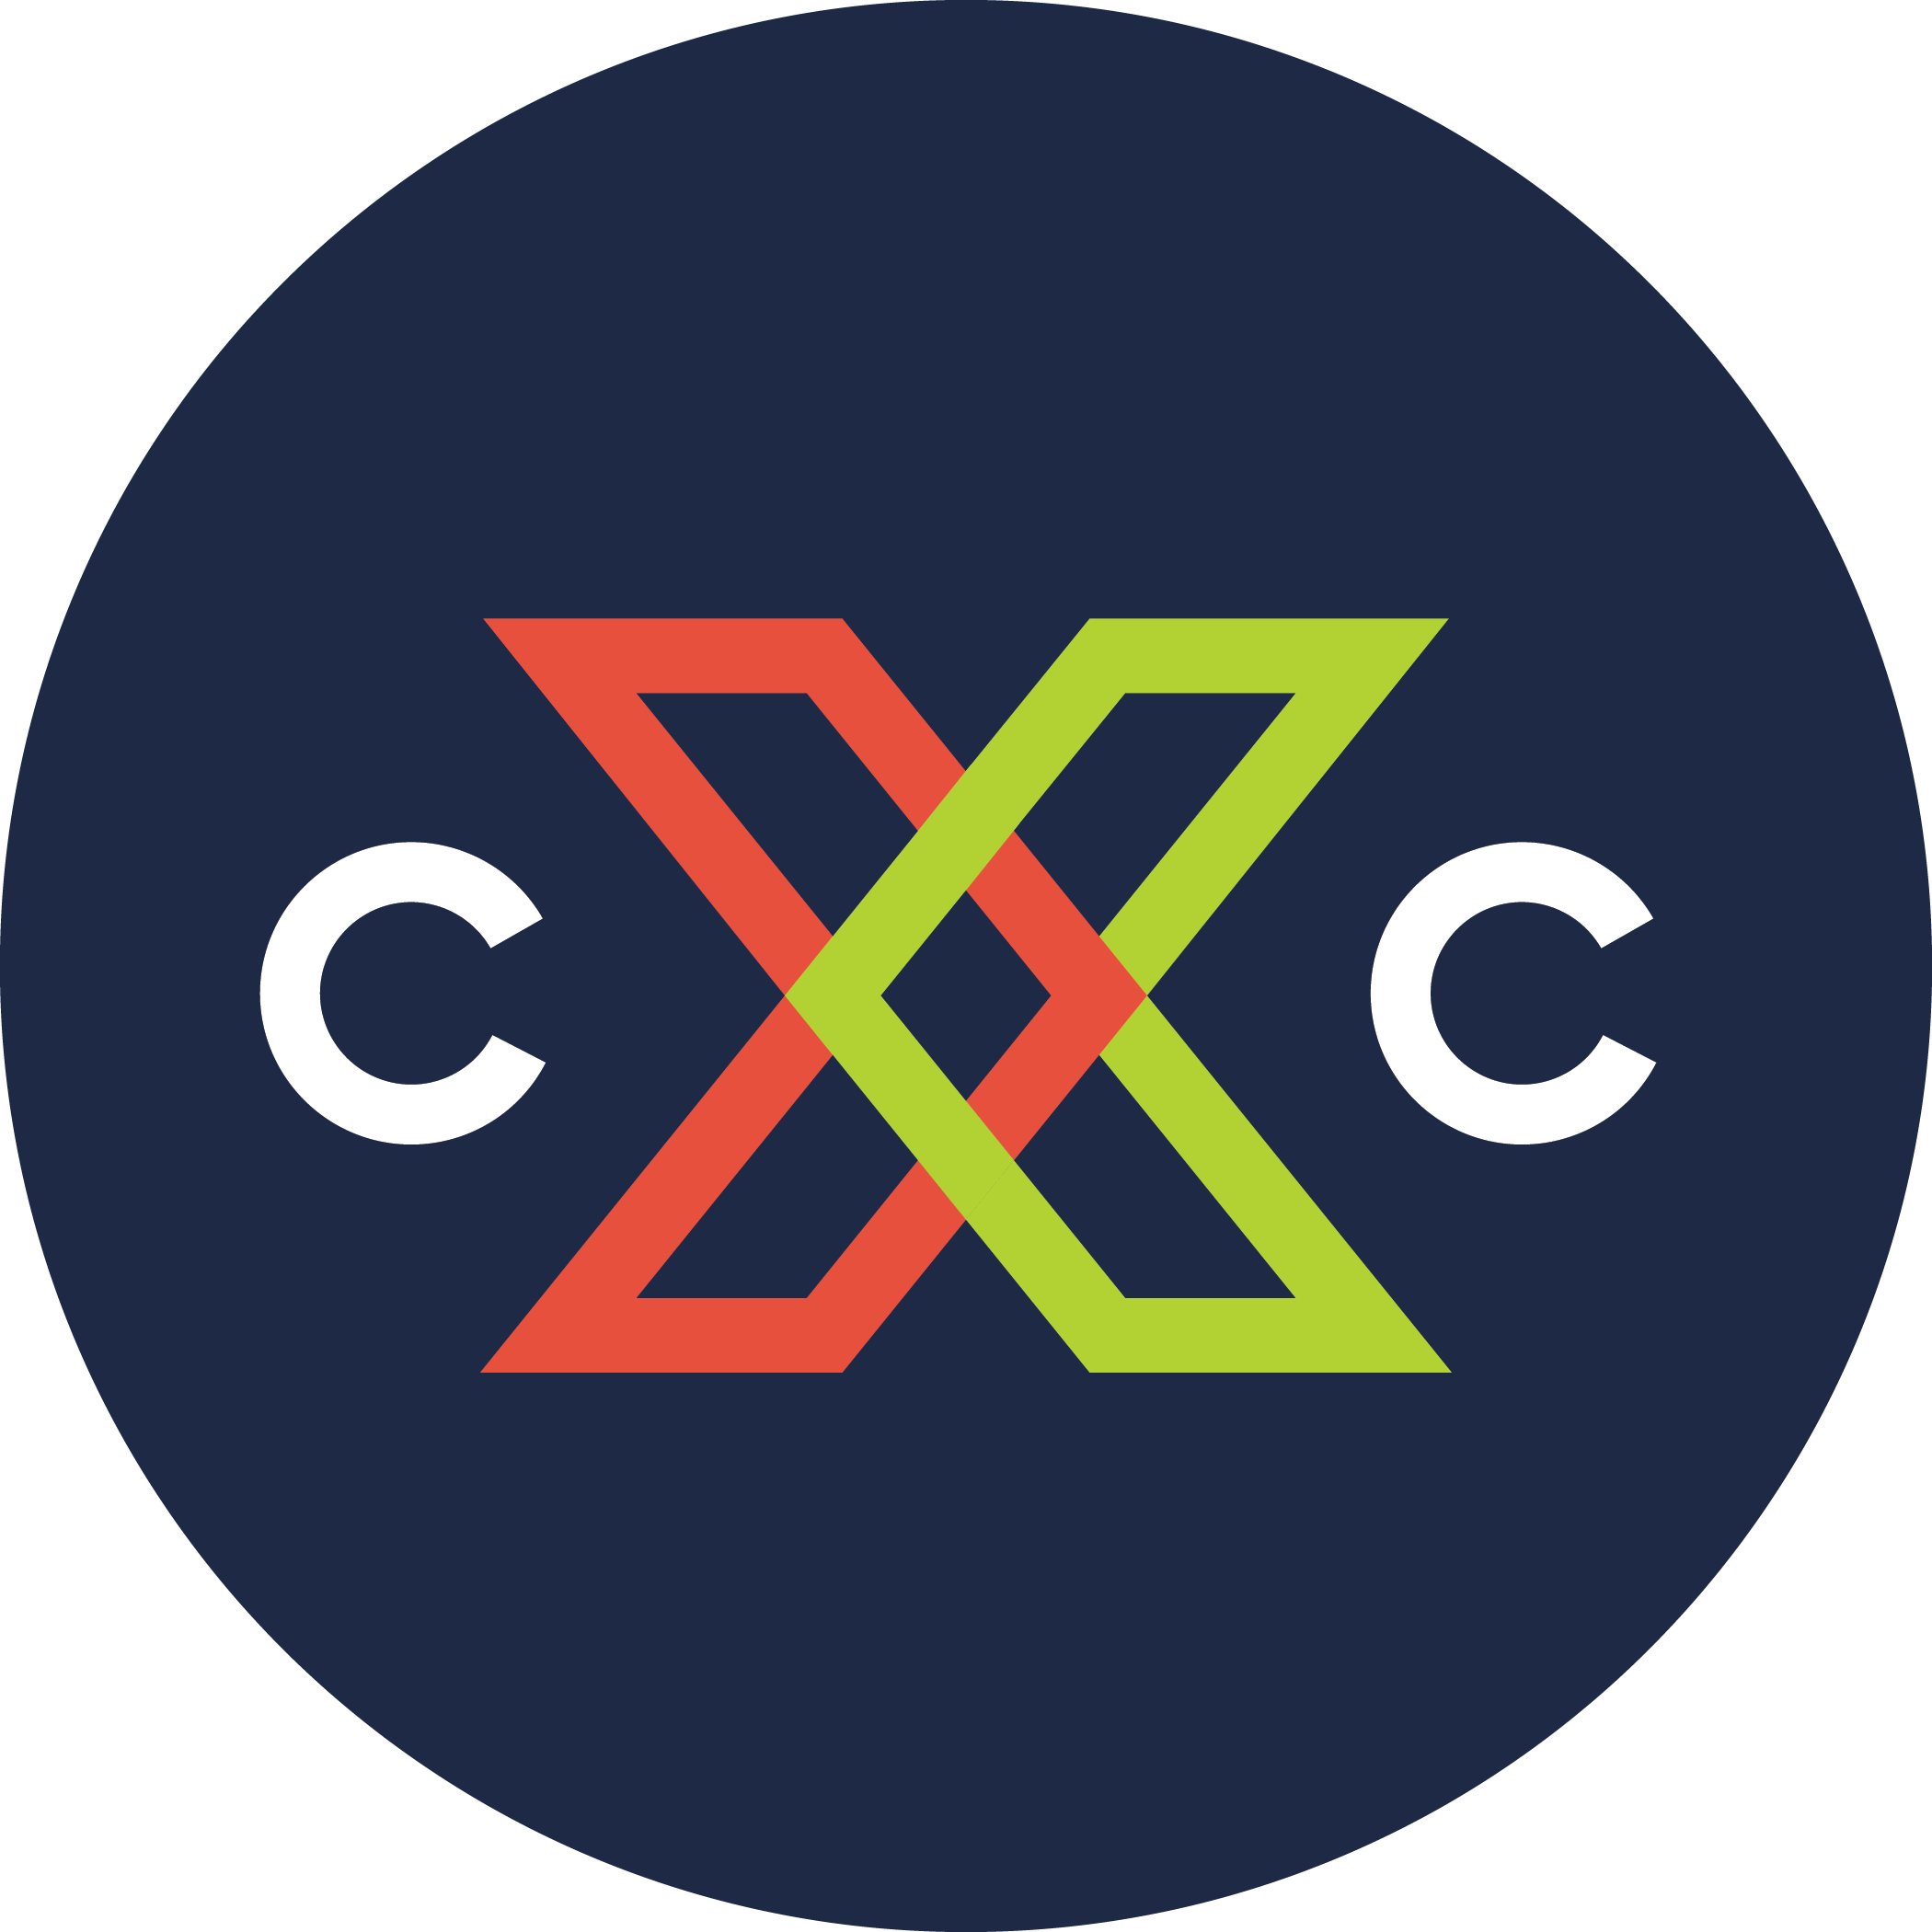 CxC_SecondaryLogo.png